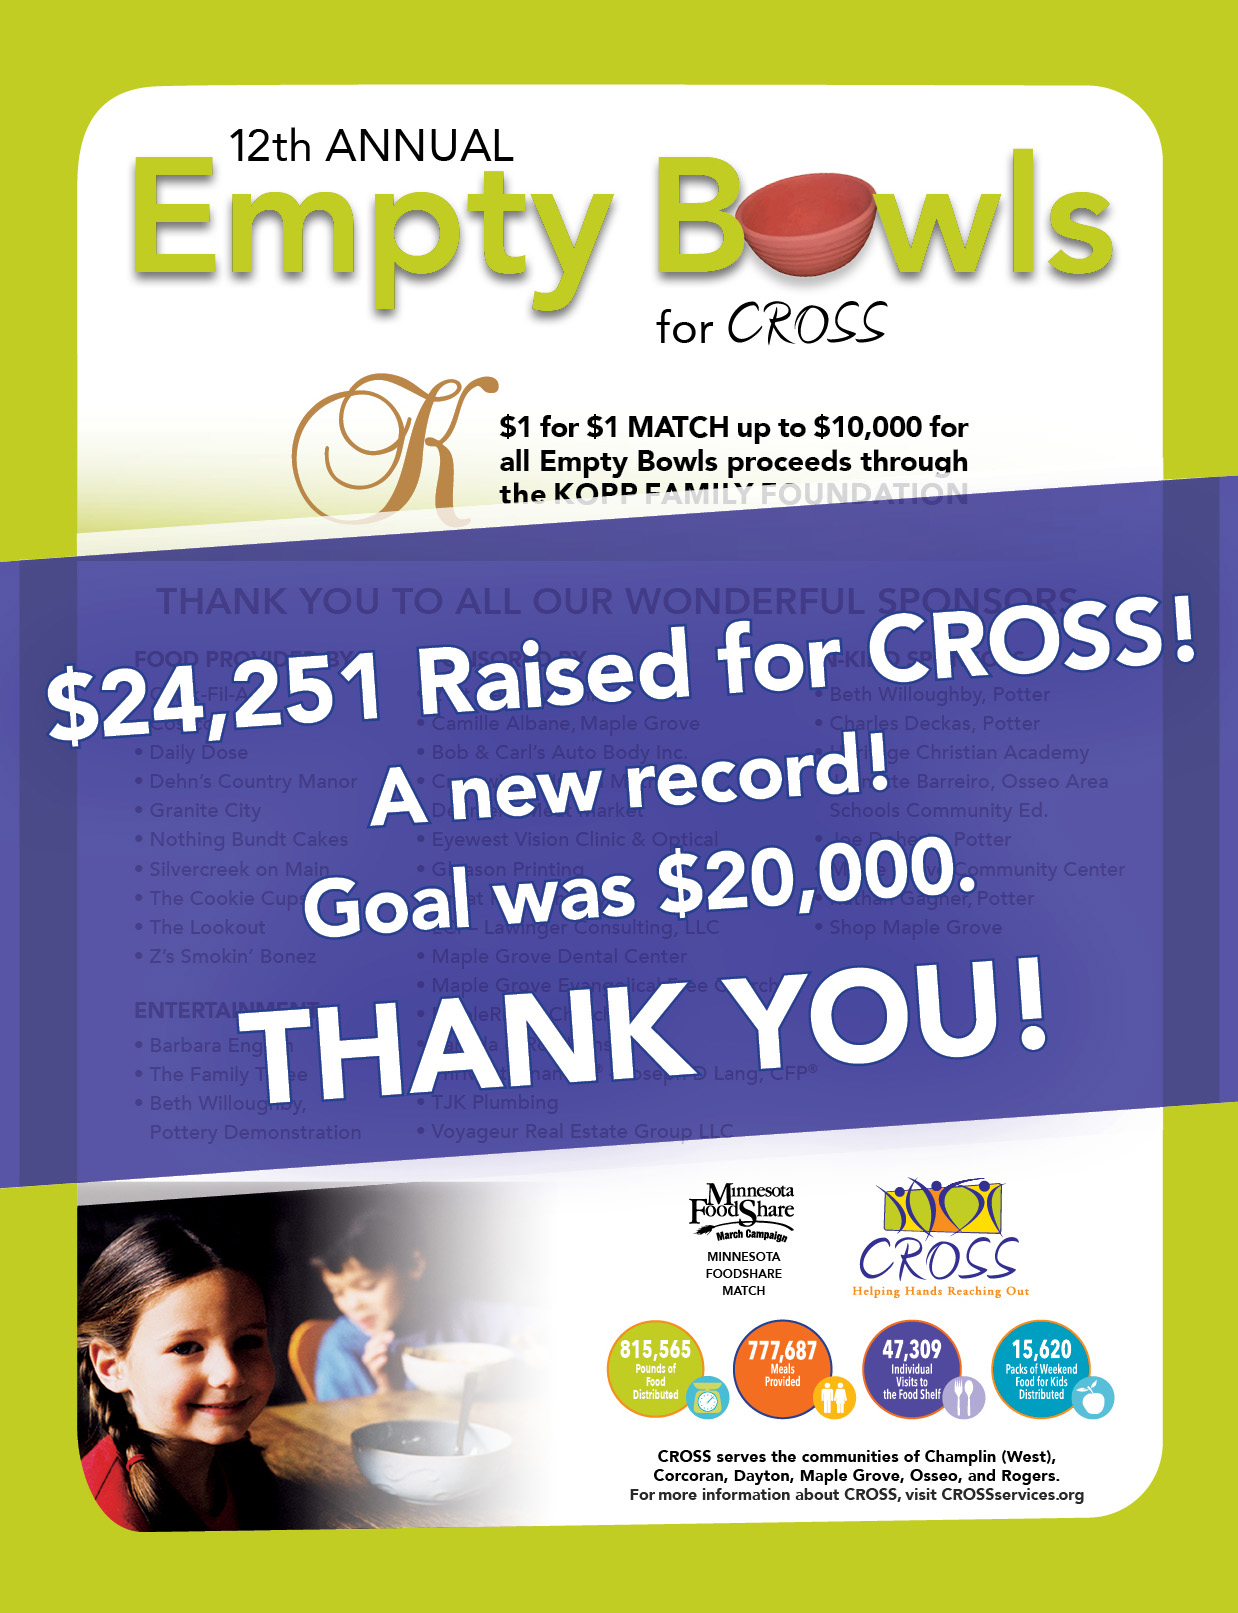 2017 CROSS Empty Bowls Total Raised